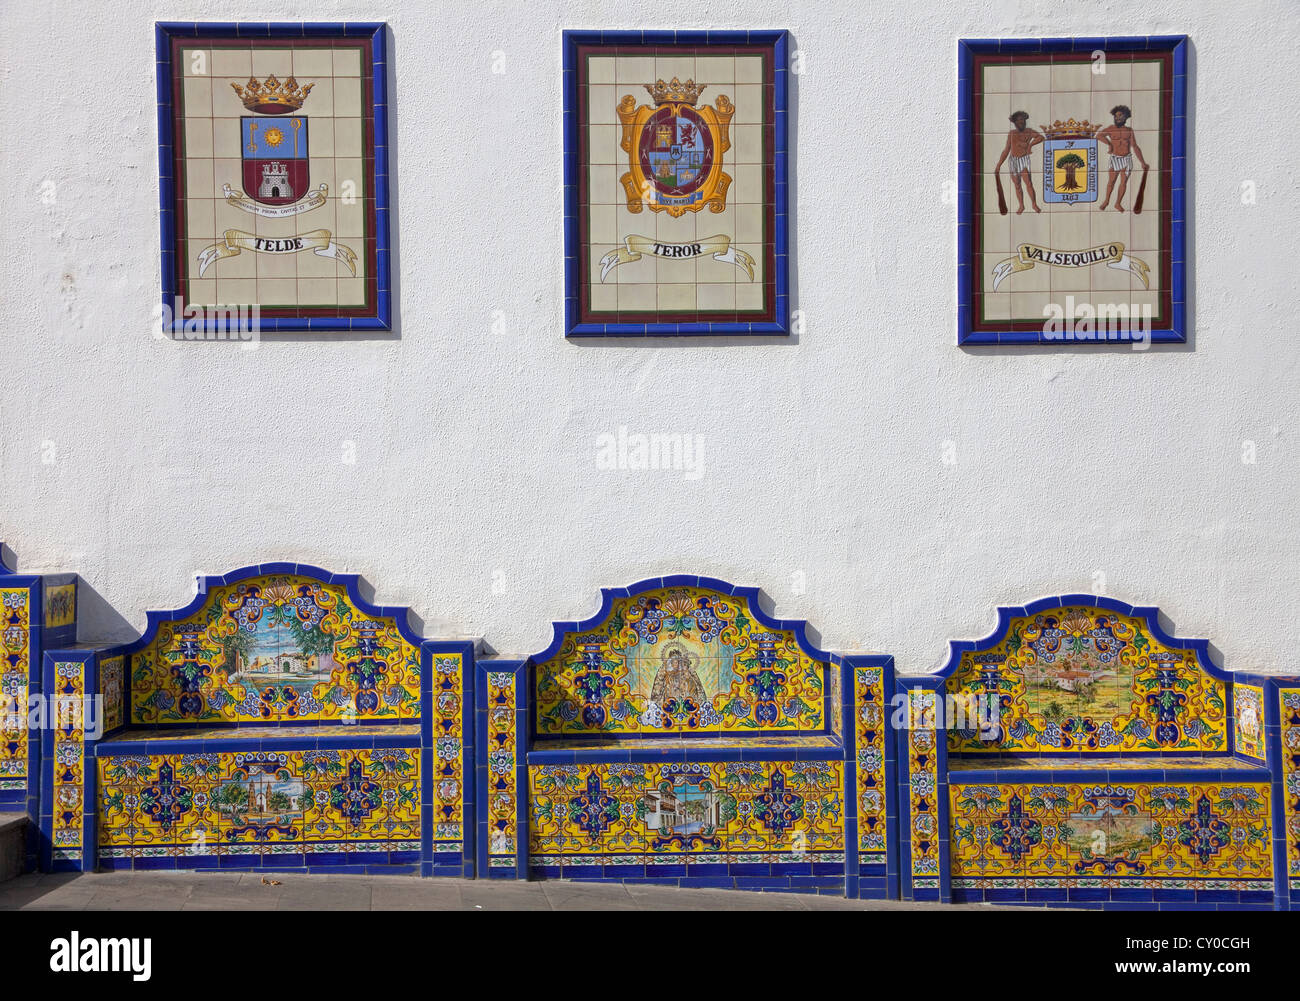 Promenade Paseo de Canarias with images on tiles, each of the 21 municipalities has an image on tiles with the coat - Stock Image